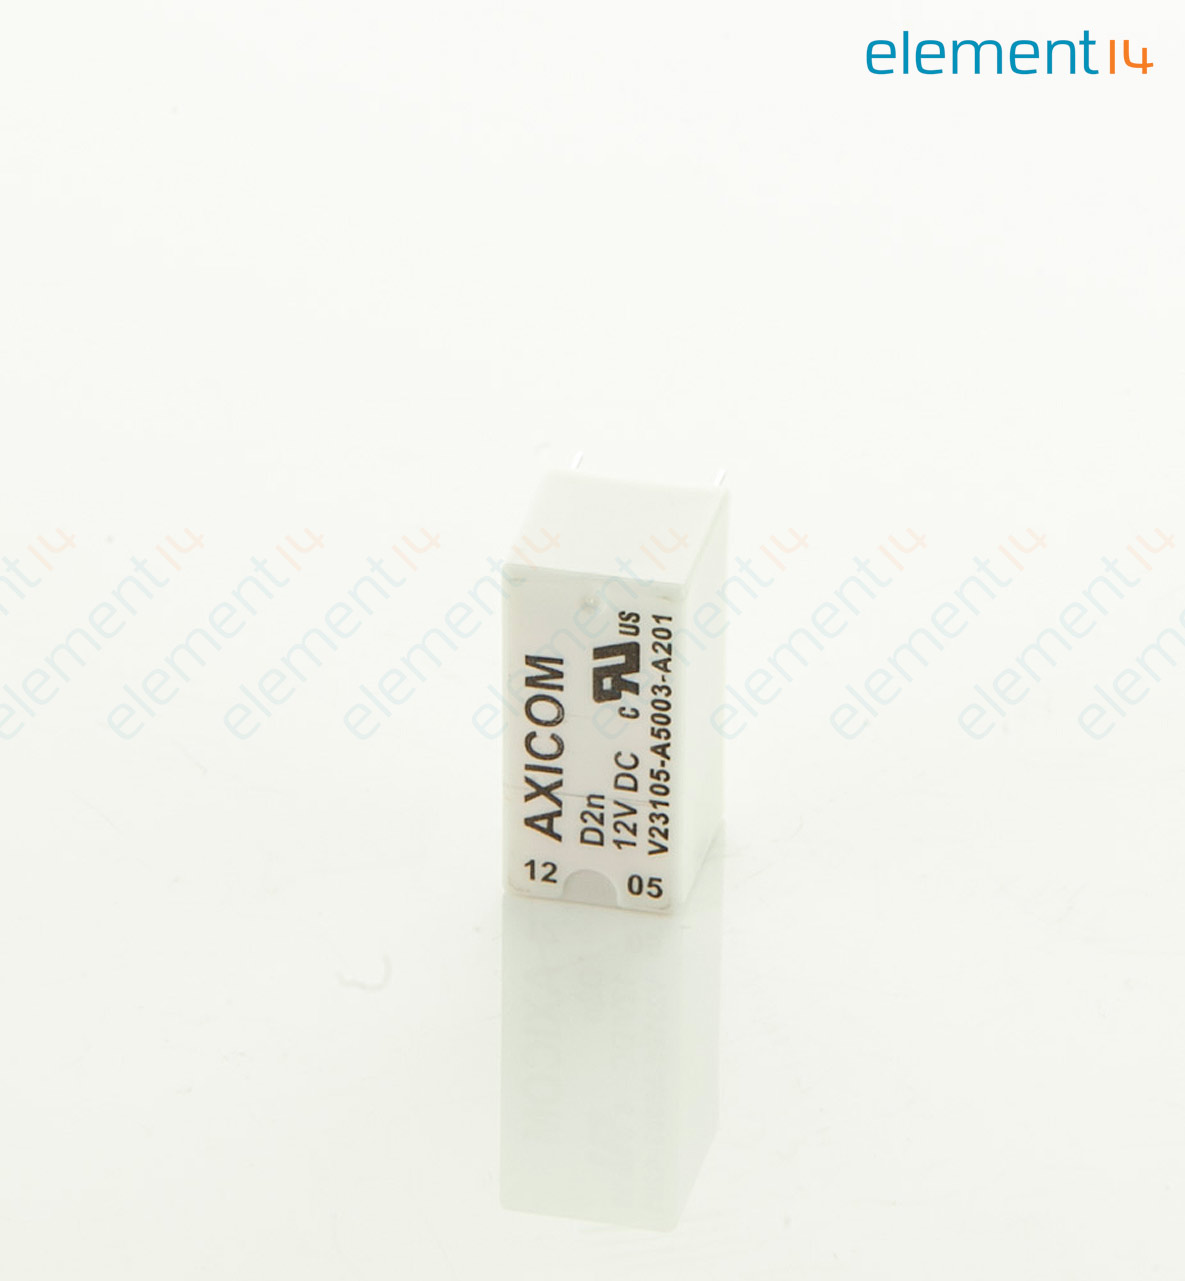 V23105a5003a201 Axicom Te Connectivity Signal Relay 12 Vdc Dpdt Function Add To Compare